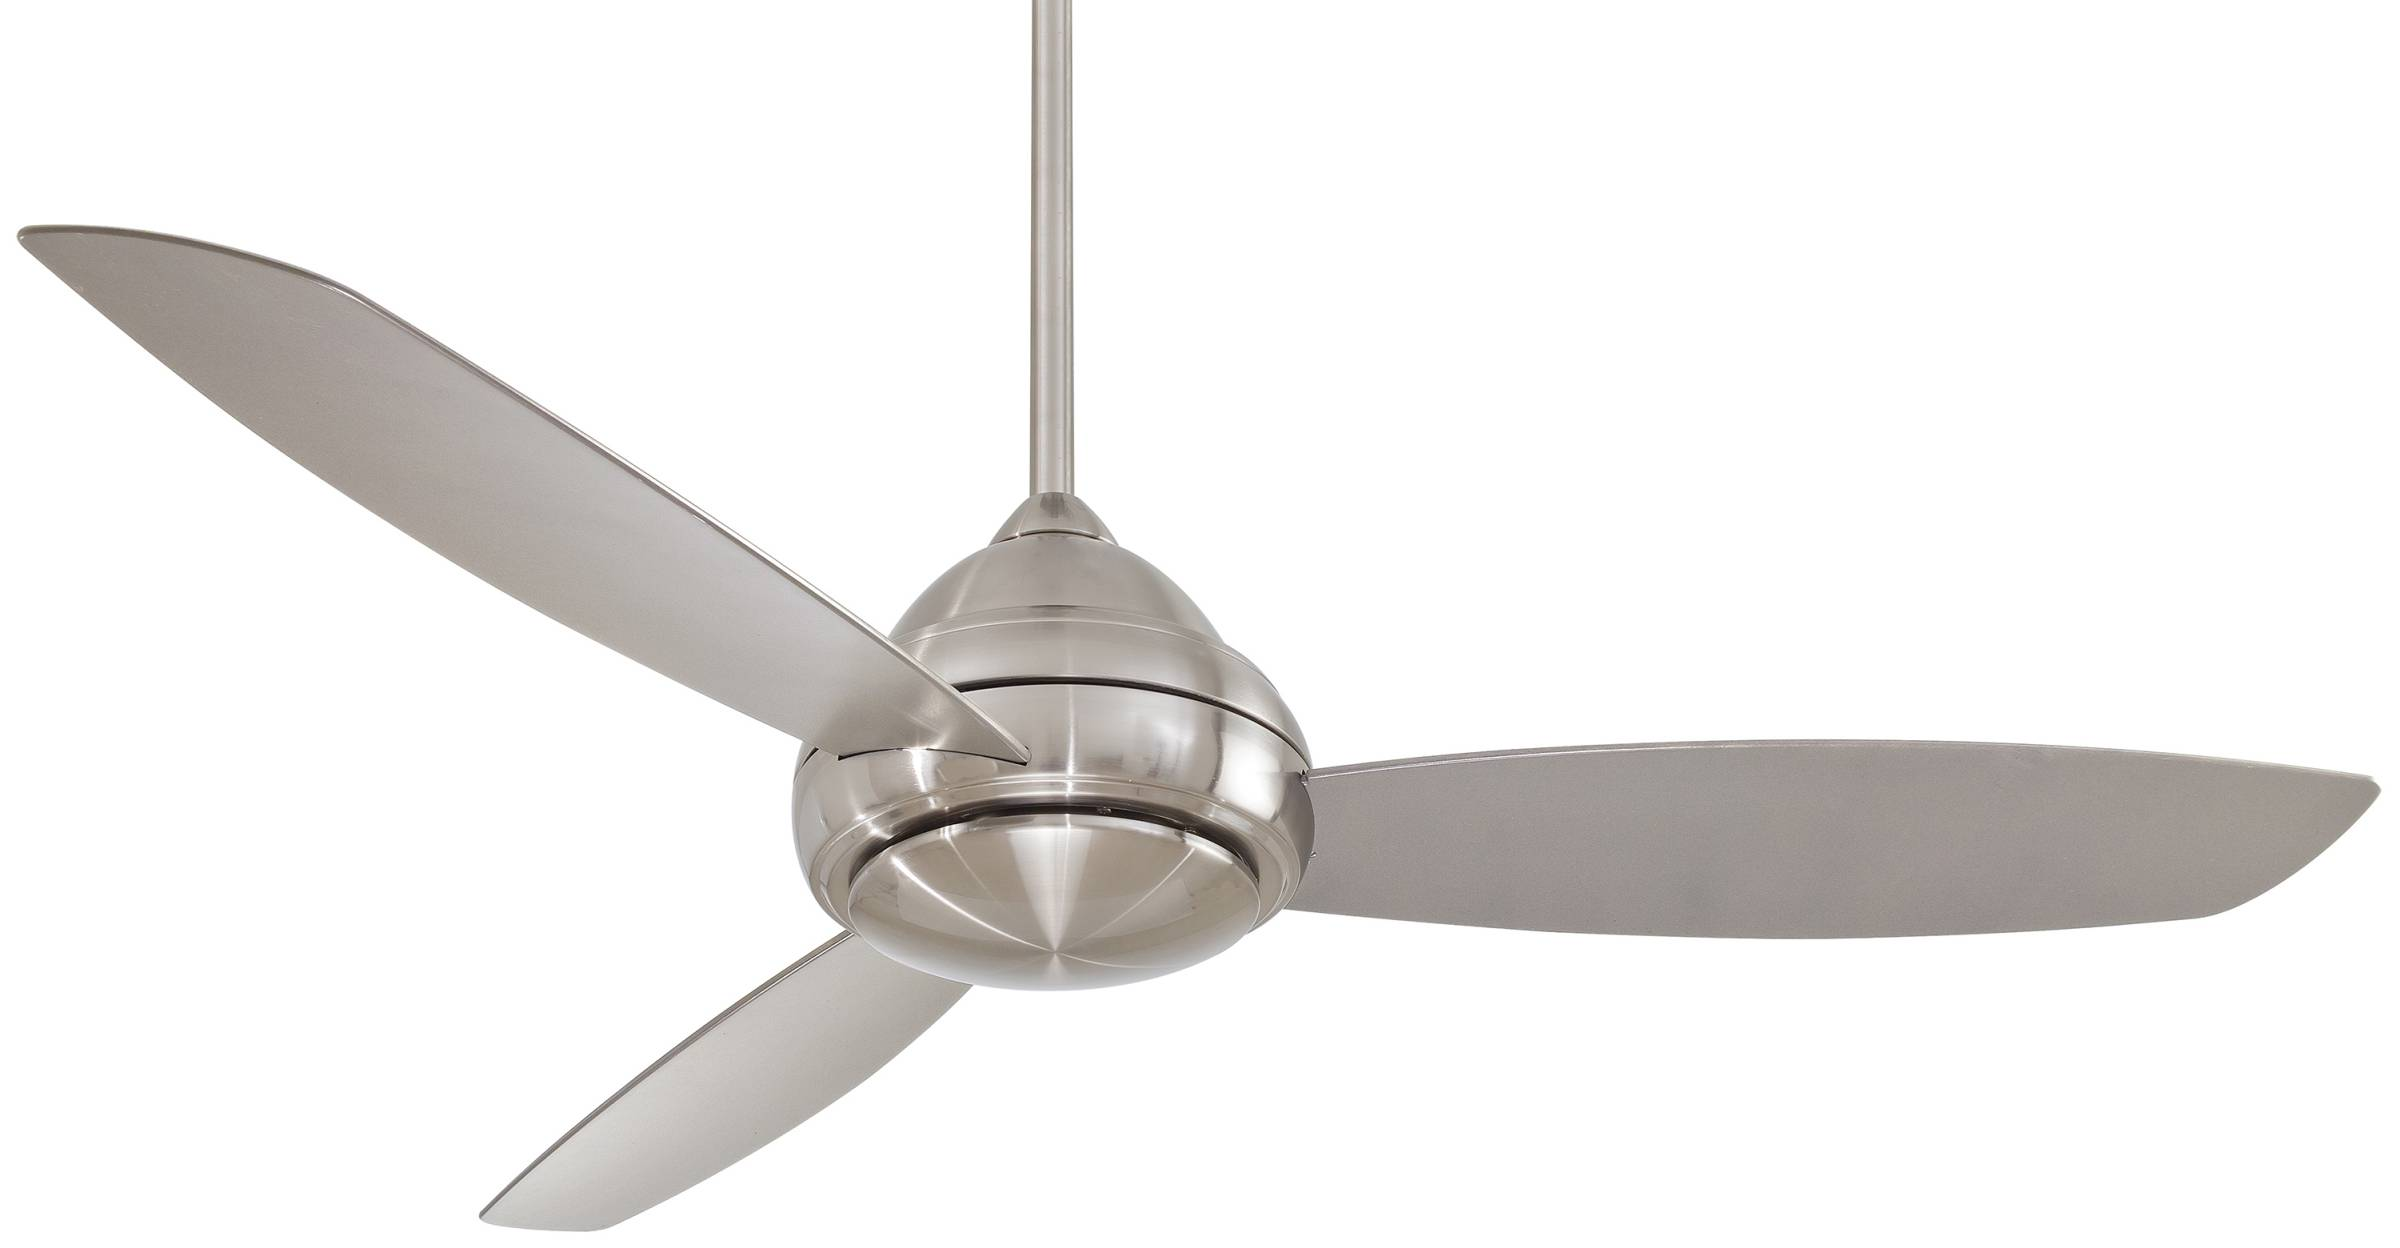 10 reasons to install Stainless steel outdoor ceiling fans